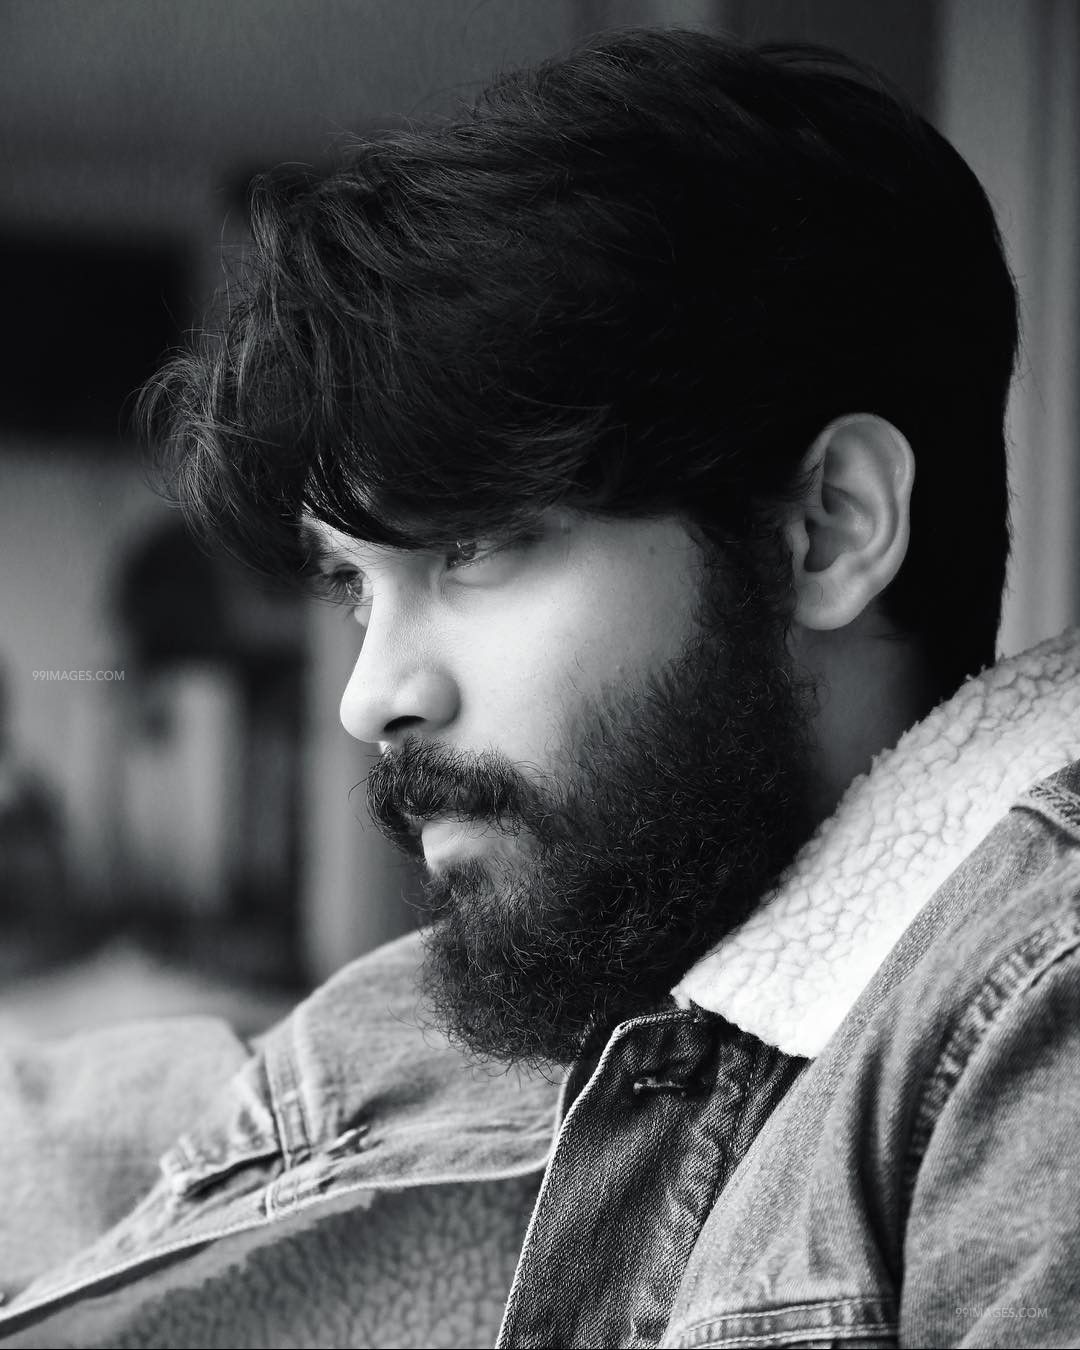 Dhruv Vikram Best Hd Photos Download 1080p Whatsapp Dp Status Images 73693 Dhruvvikram Actor Kolly Beard Images Cute Profile Pictures Galaxy Pictures 1080p full hd 1080p arjun reddy hd